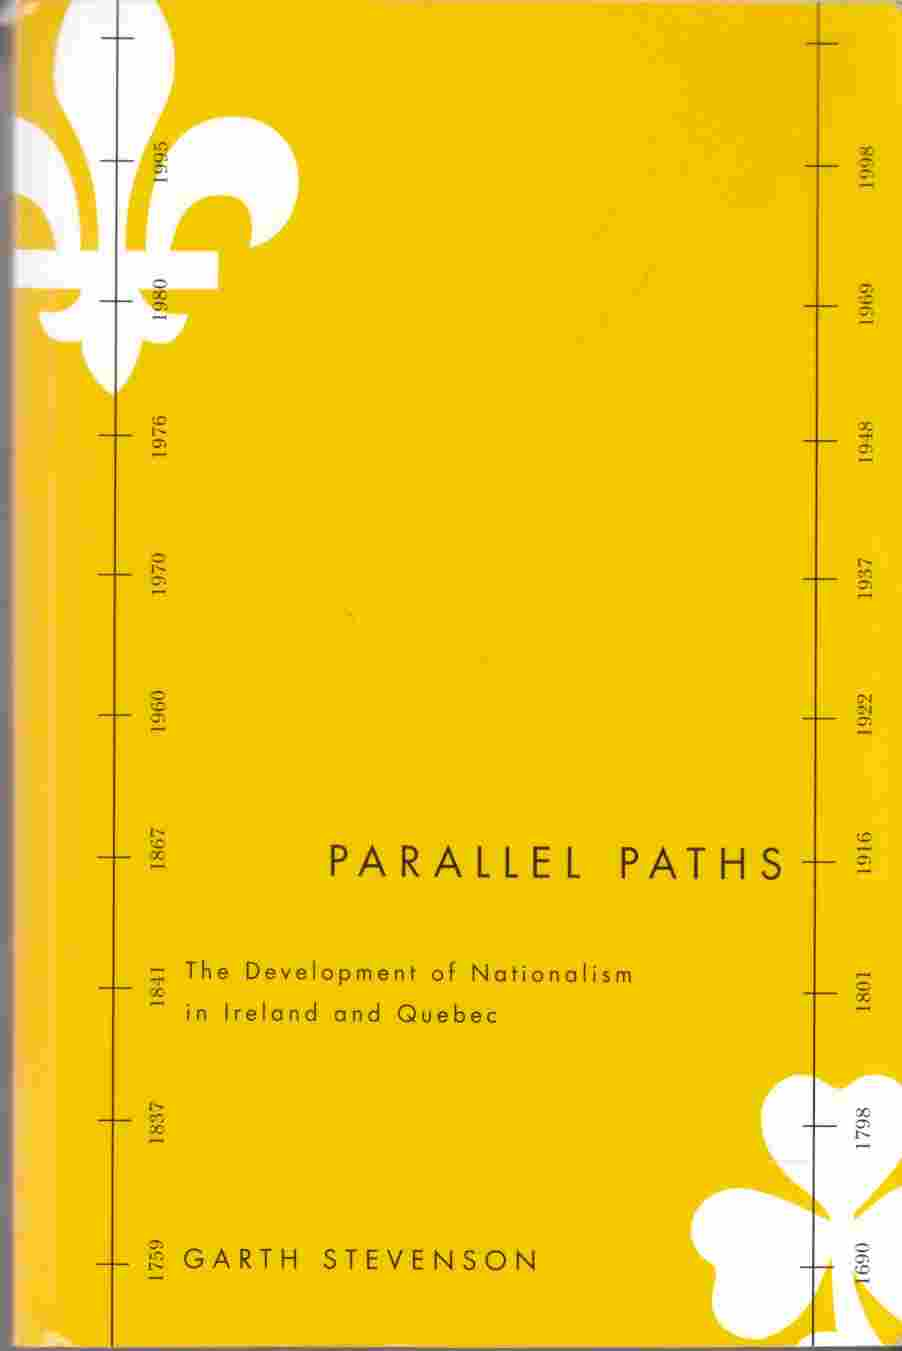 Image for Parallel Paths The Development of Nationalism in Ireland and Quebec